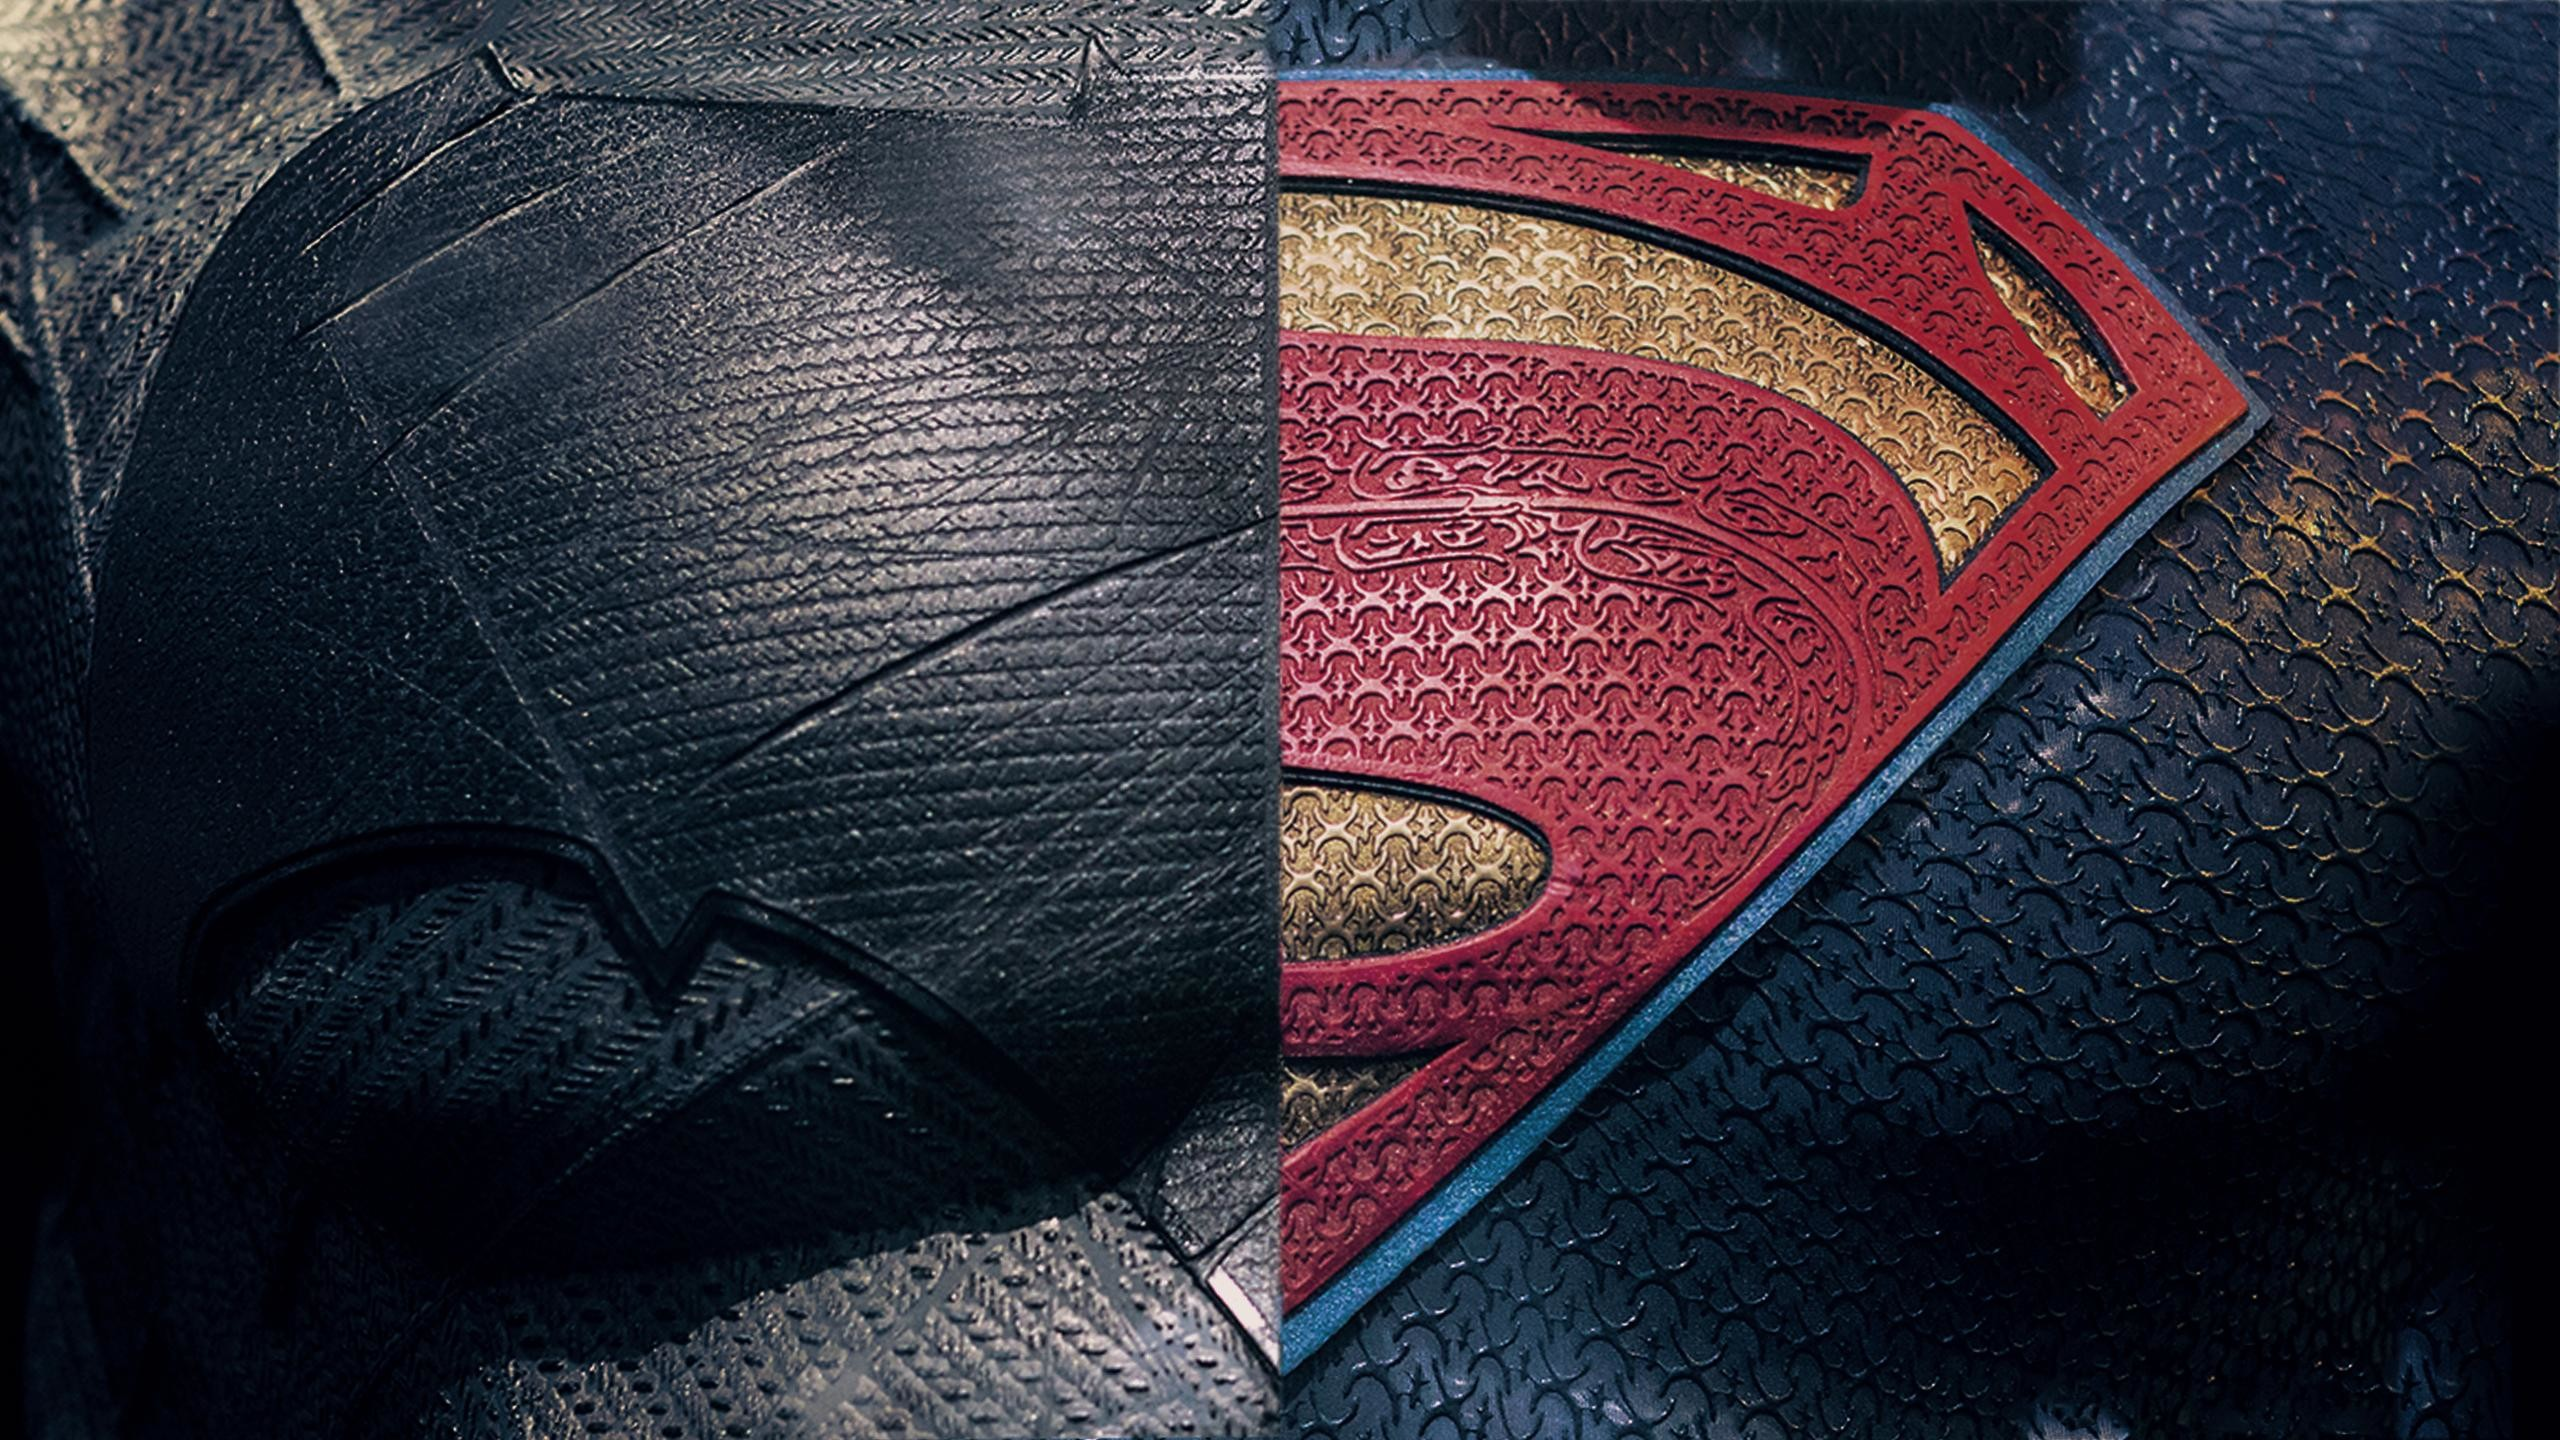 2560x1440 Batman V Superman - 5 Wallpapers